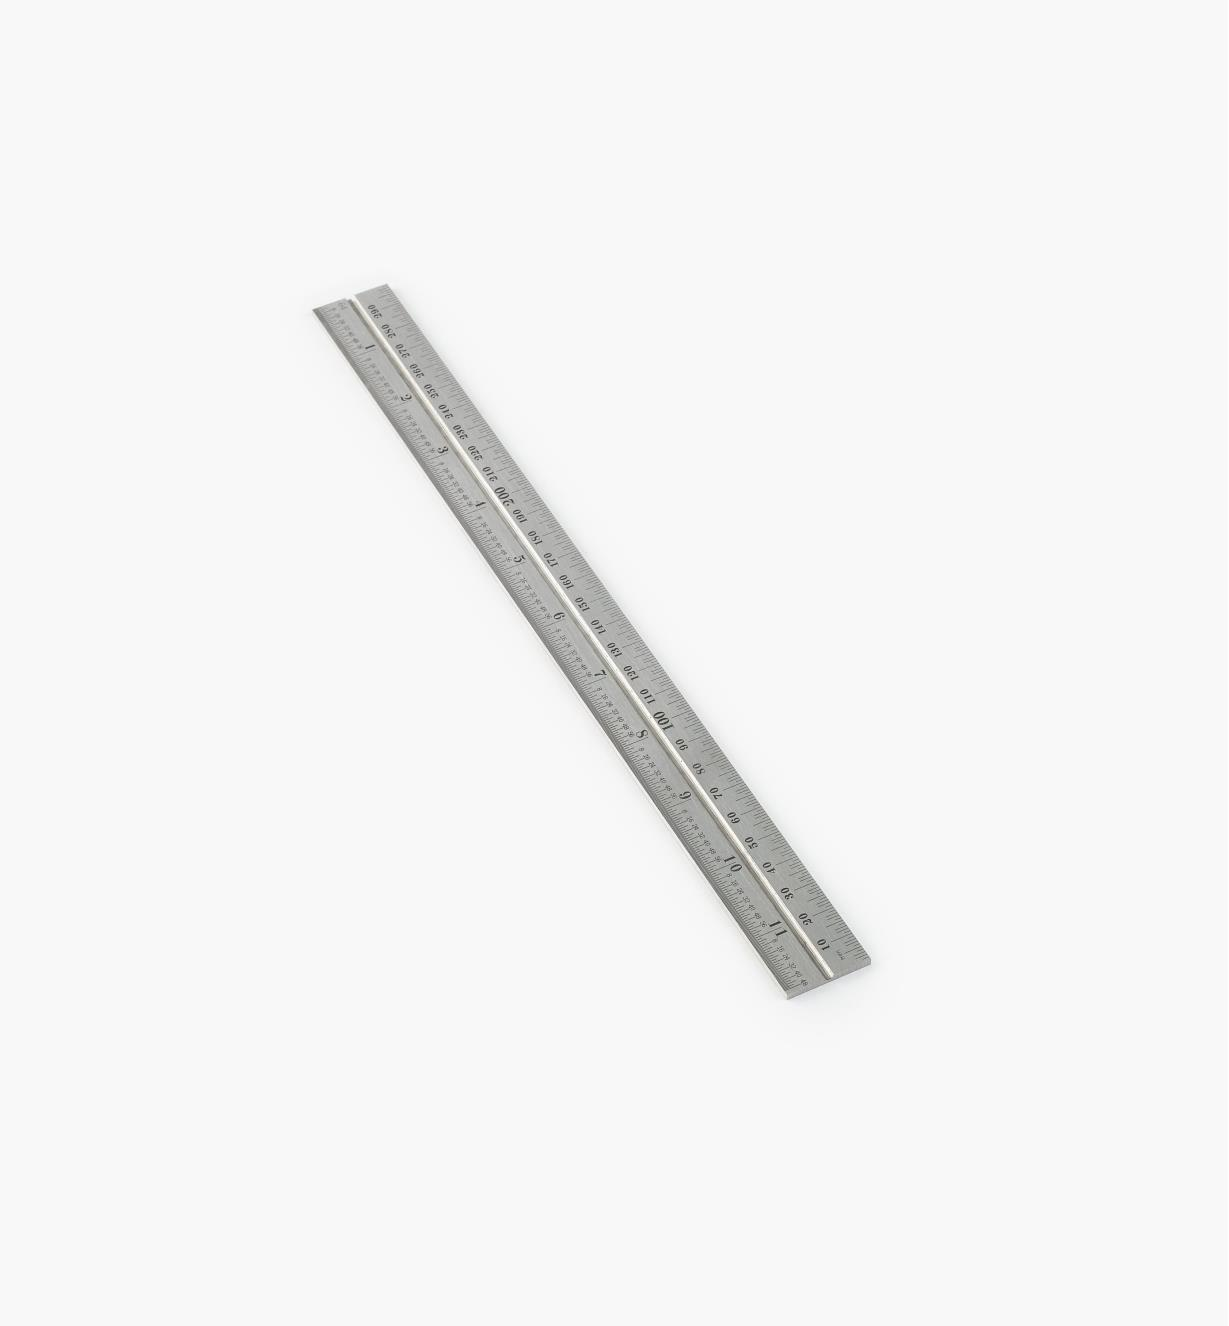 "30N0307 - 12"" Imperial/Metric Rule"